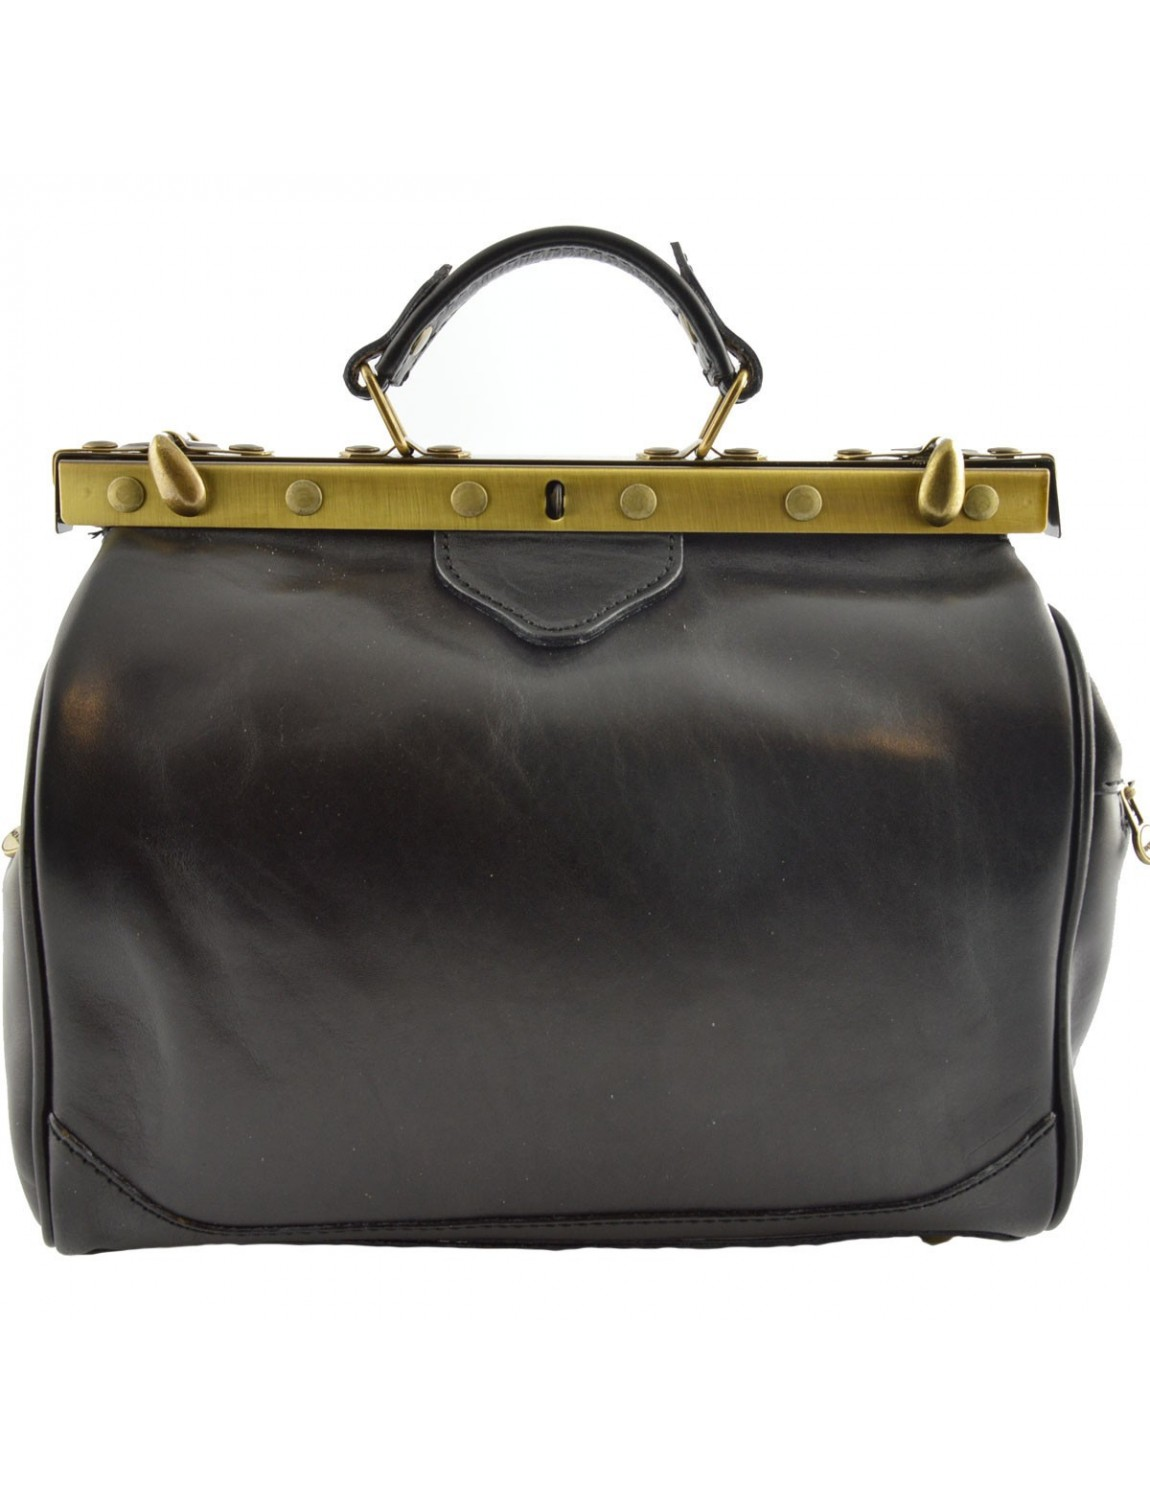 9492803b31 Genuine Leather Bag for Doctor - Fenice